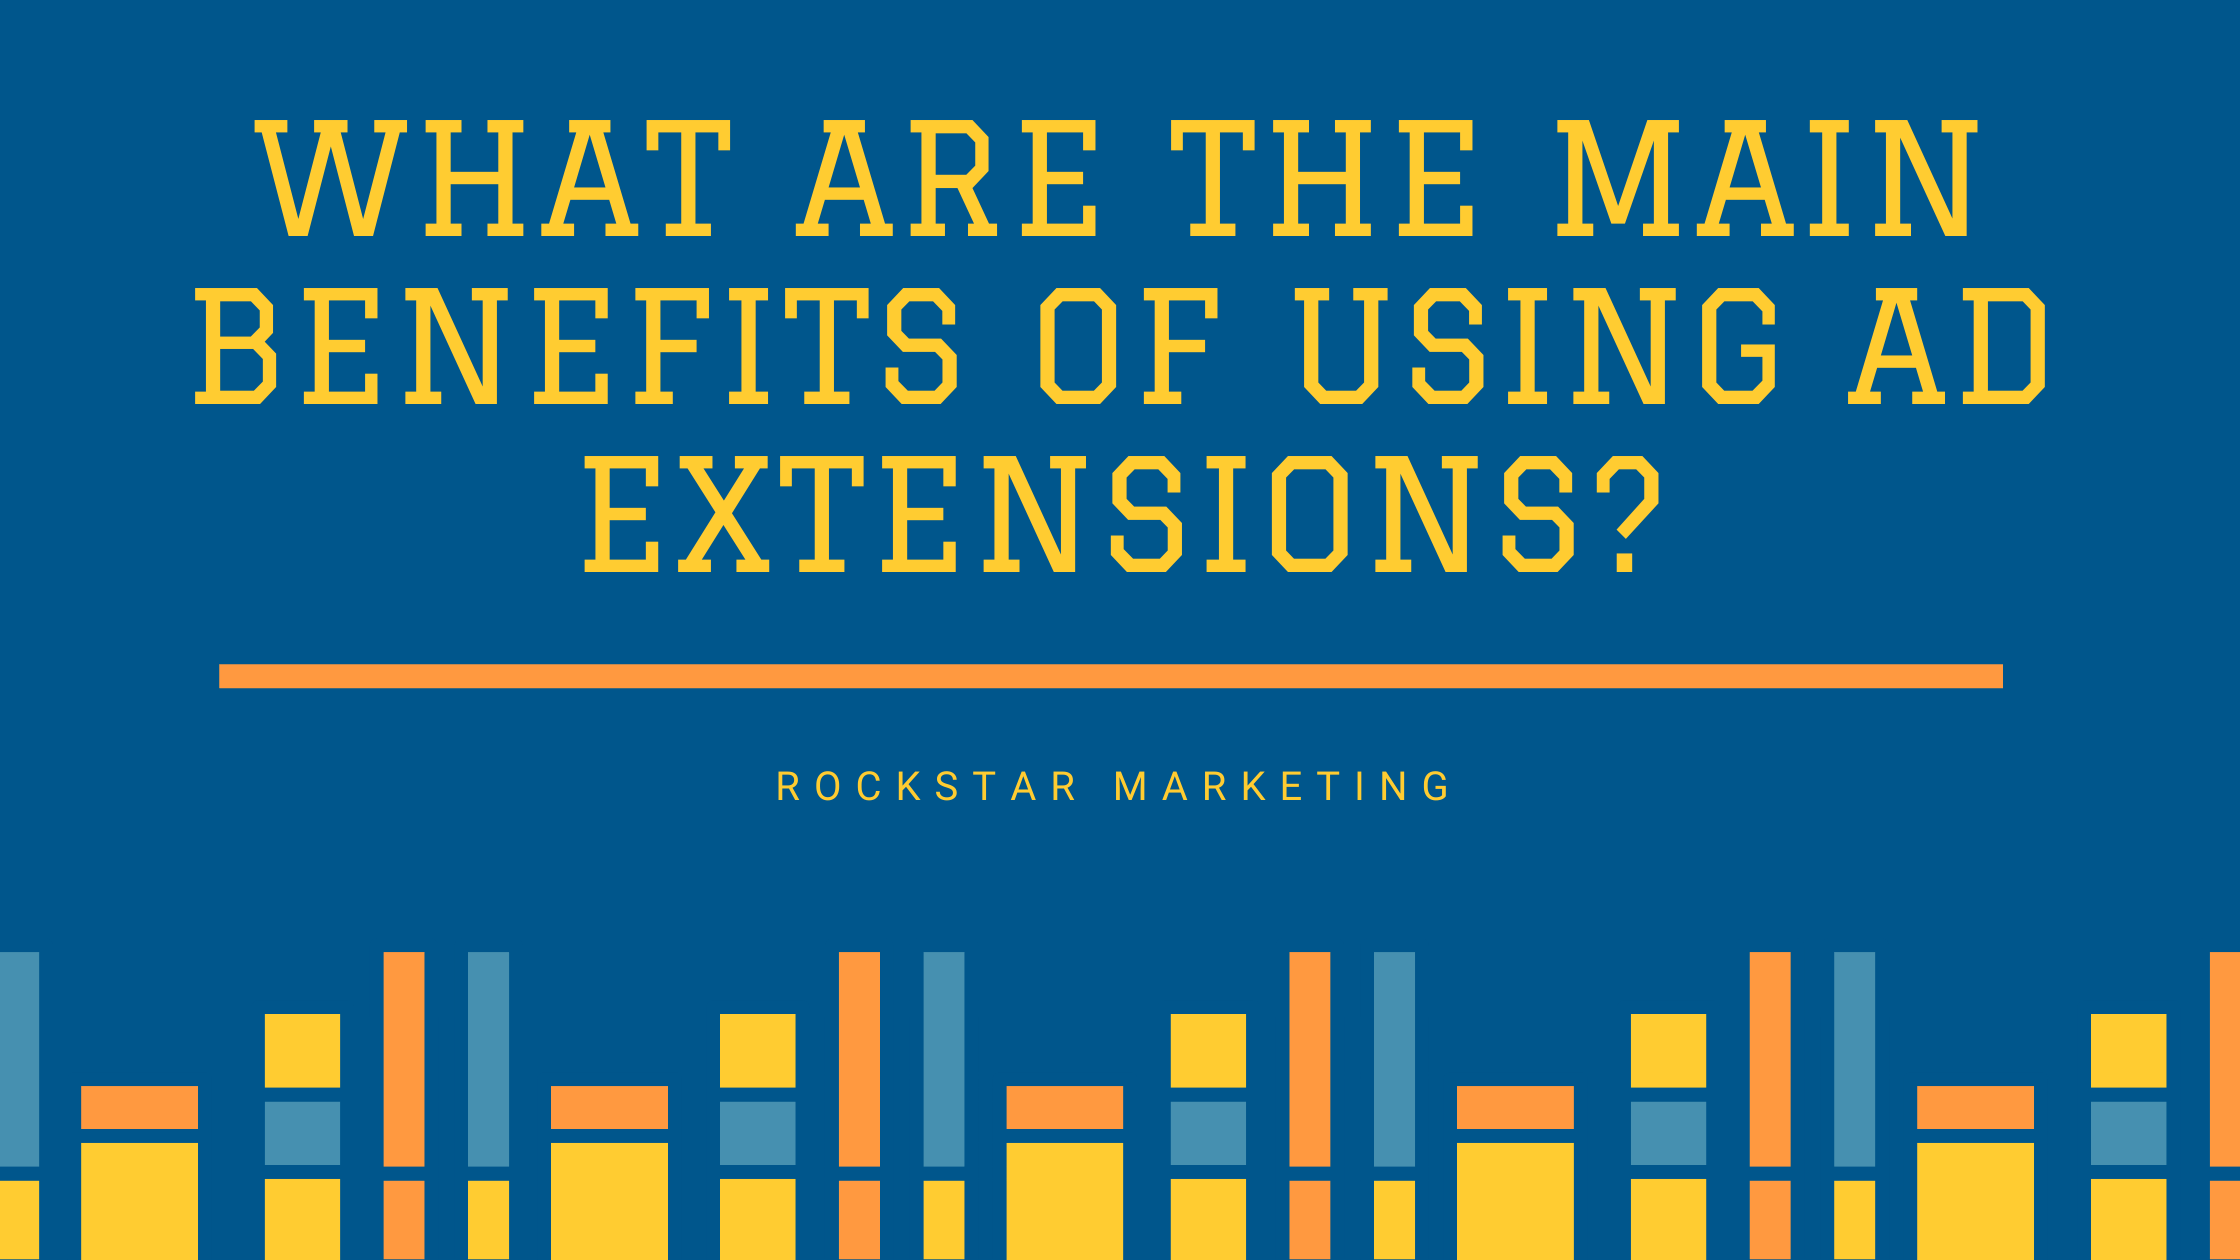 main benefits of using ad extensions